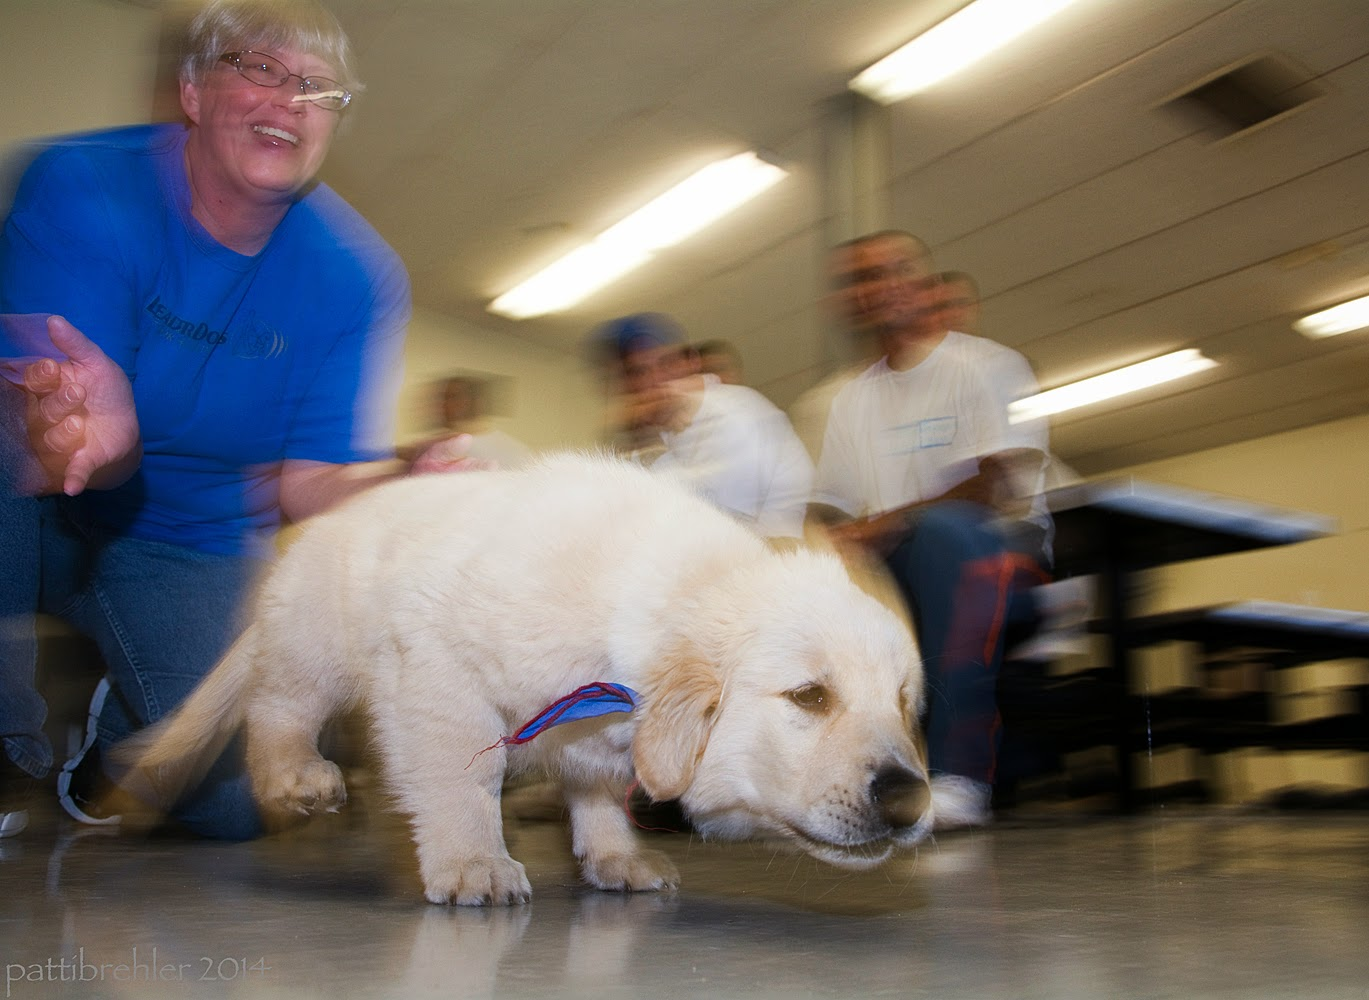 A floor-level blurred shot of a small golden retriever puppy digging in to run from left to right. A woman wearing a blue t-shirt and glases has just let the pup go - she is on her knees and her hands are spread out. There are several men in the background sitting on lunch table stools. The puppy's rear legs are off the floor and his head is low looking to the right.